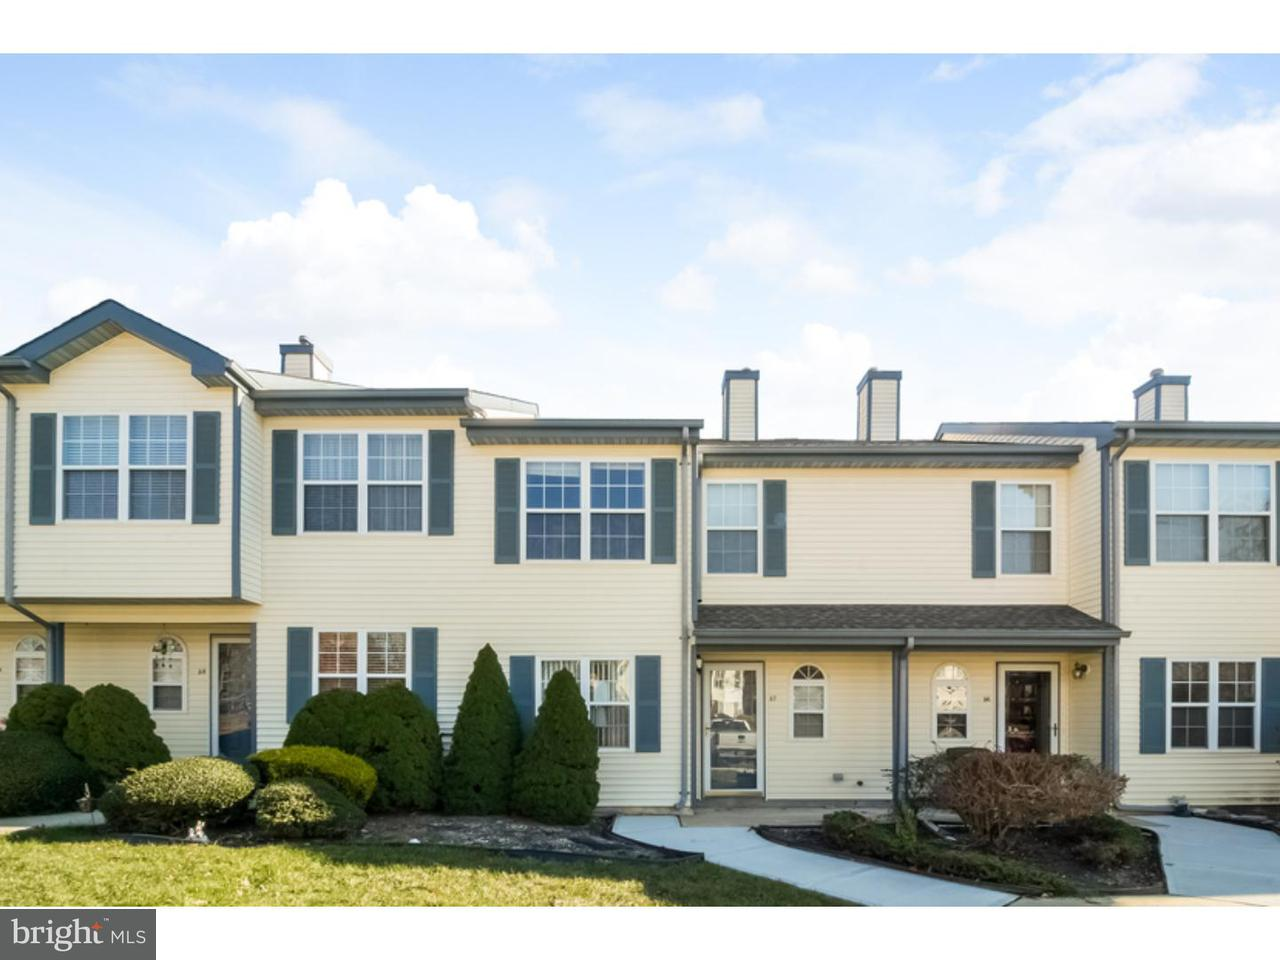 Single Family Home for Sale at 57 QUAIL RUN Bayville, New Jersey 08721 United States